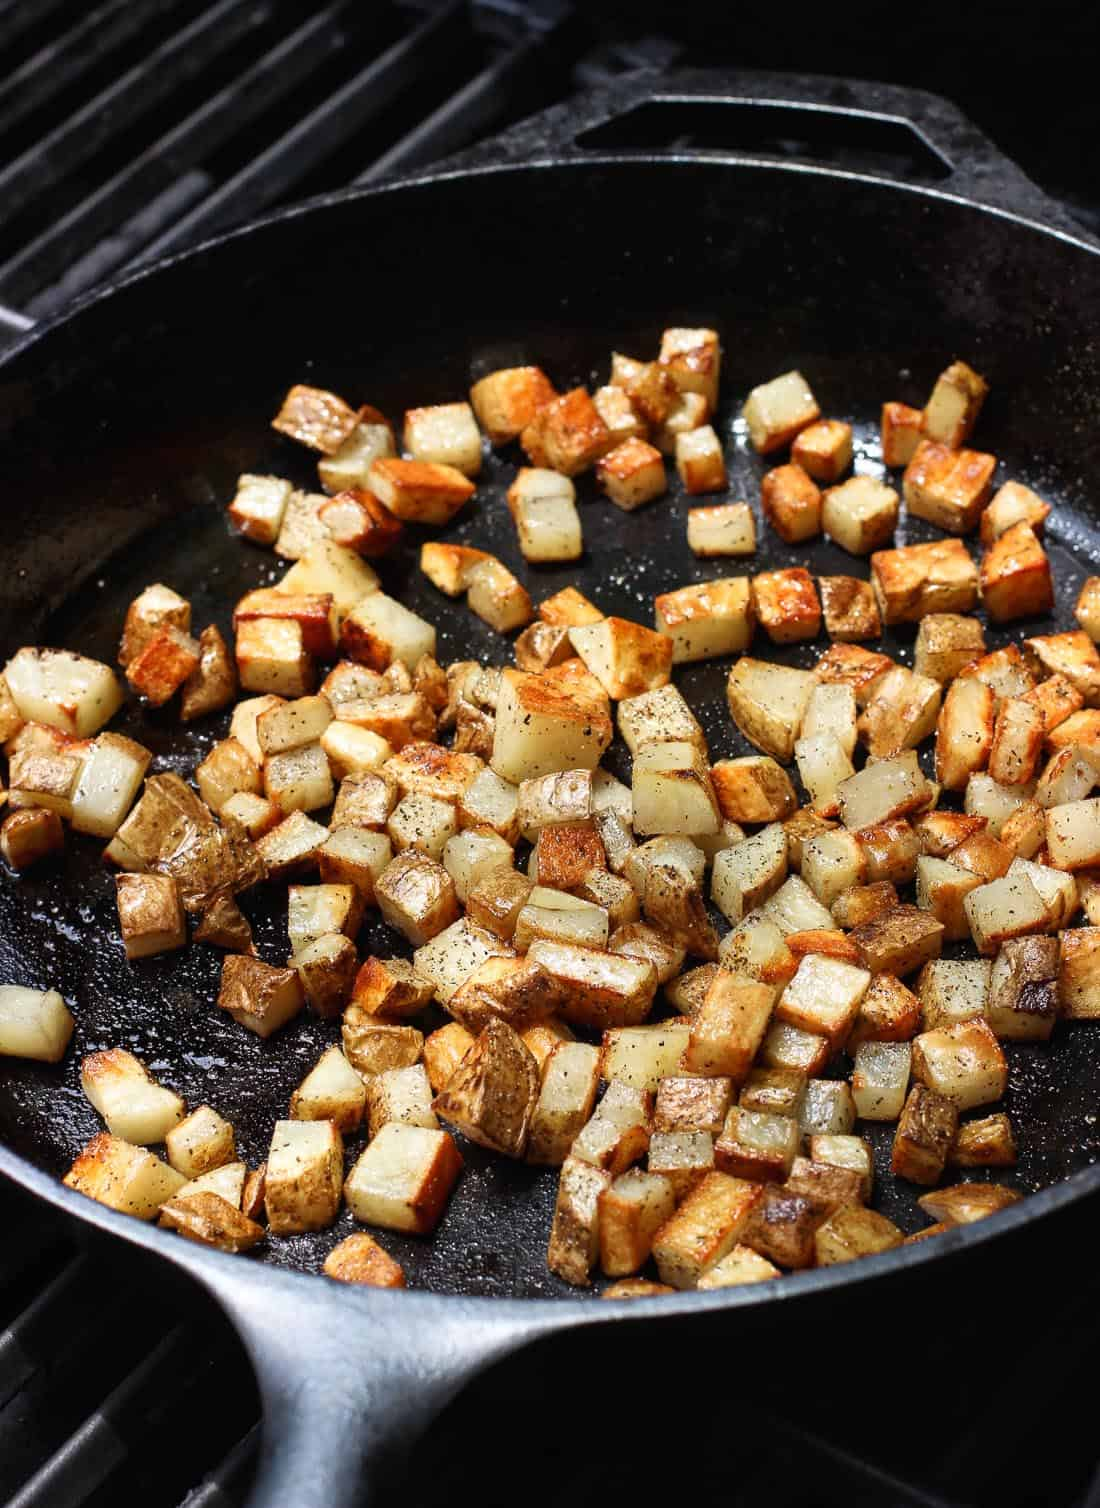 A cast iron pan filled with roasted potato cubes on a grill.